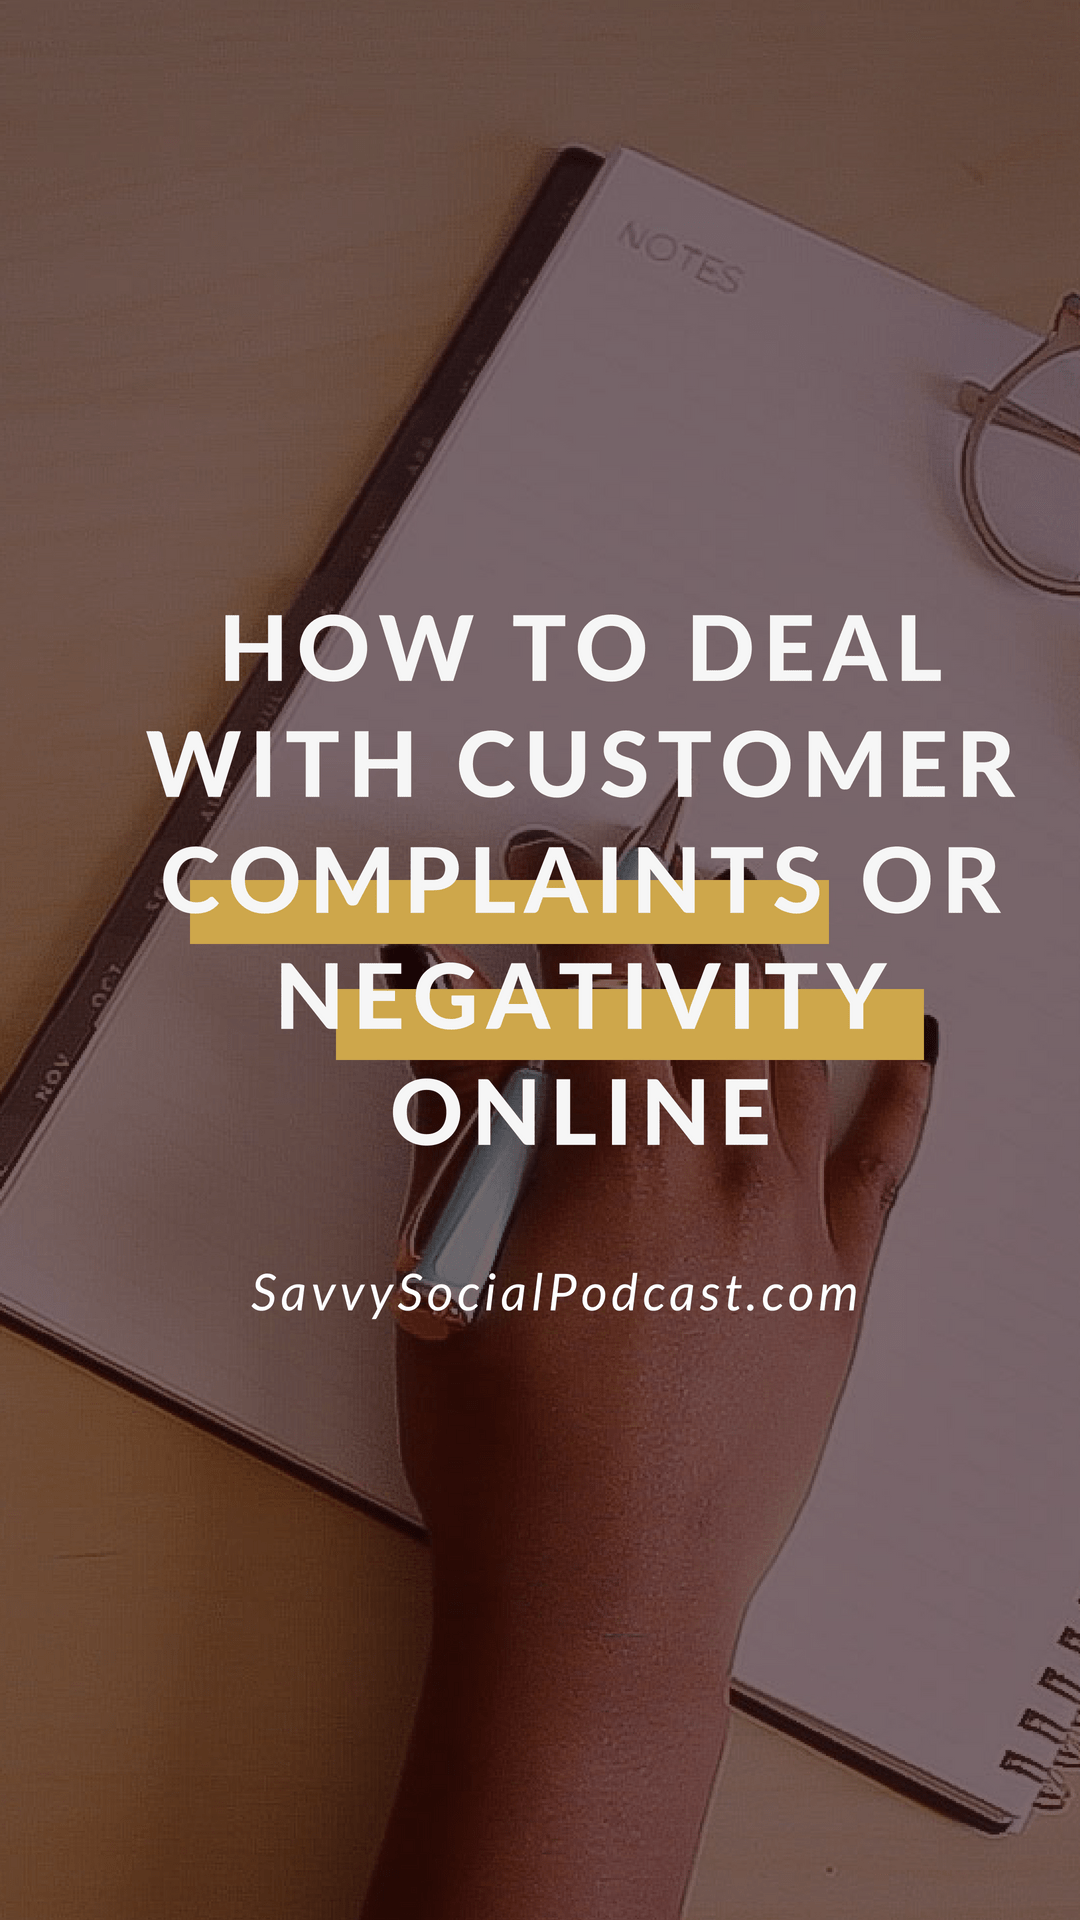 Did you get a customer complaint or a negative comment on your social media account? Listen in to learn how to navigate this sensitive situation.